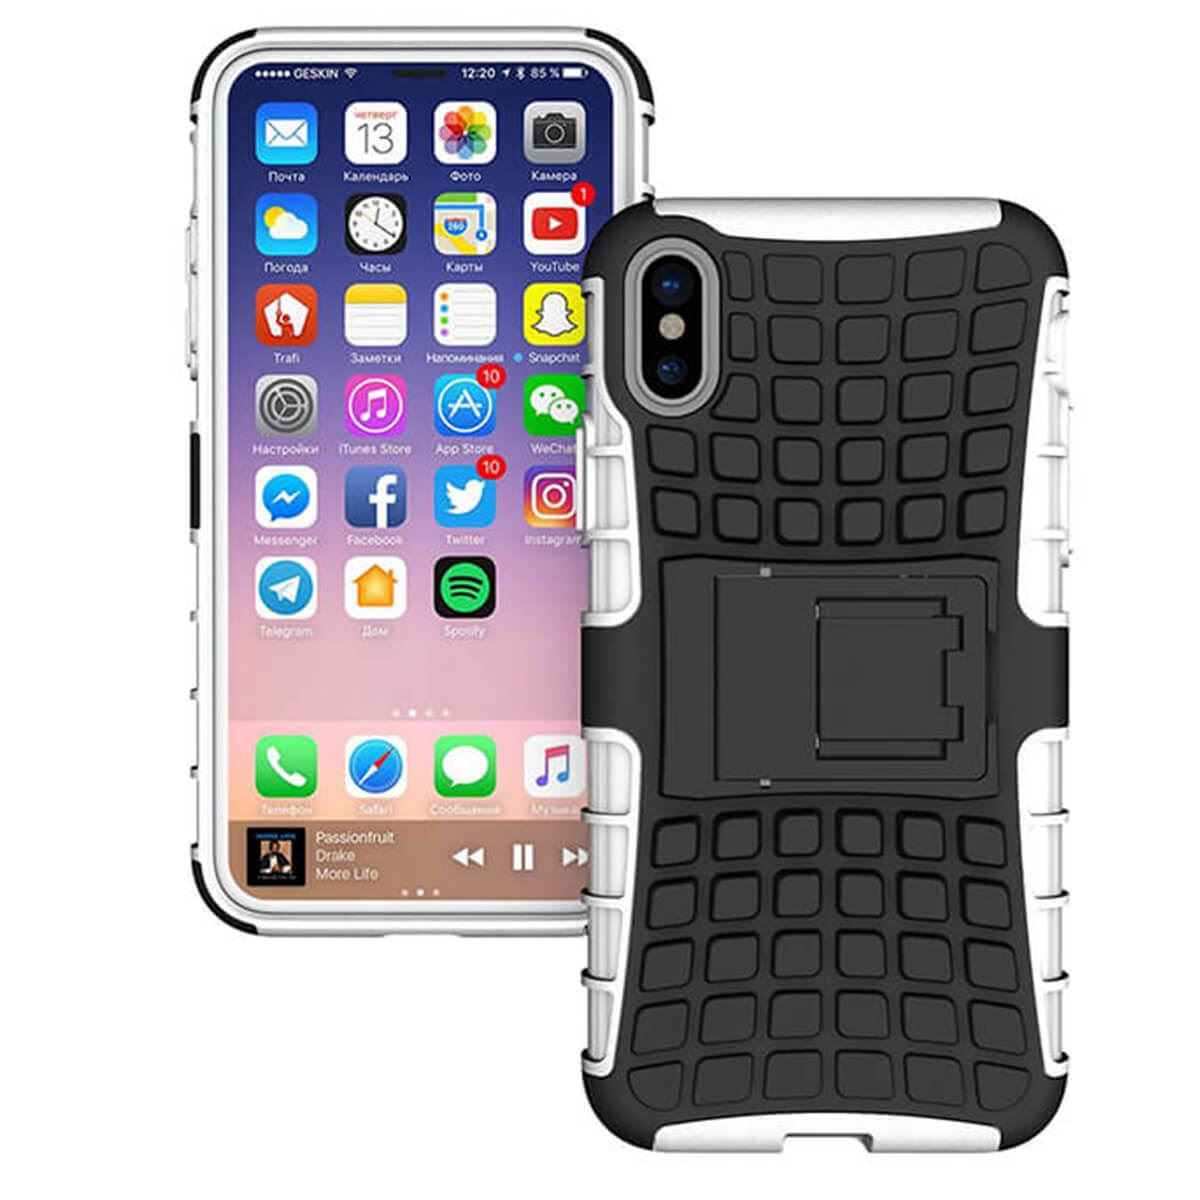 Shockproof-Case-Apple-iPhone-10-X-8-7-6s-Se-5-Hard-Heavy-Duty-Stand-Armour-Cover thumbnail 18